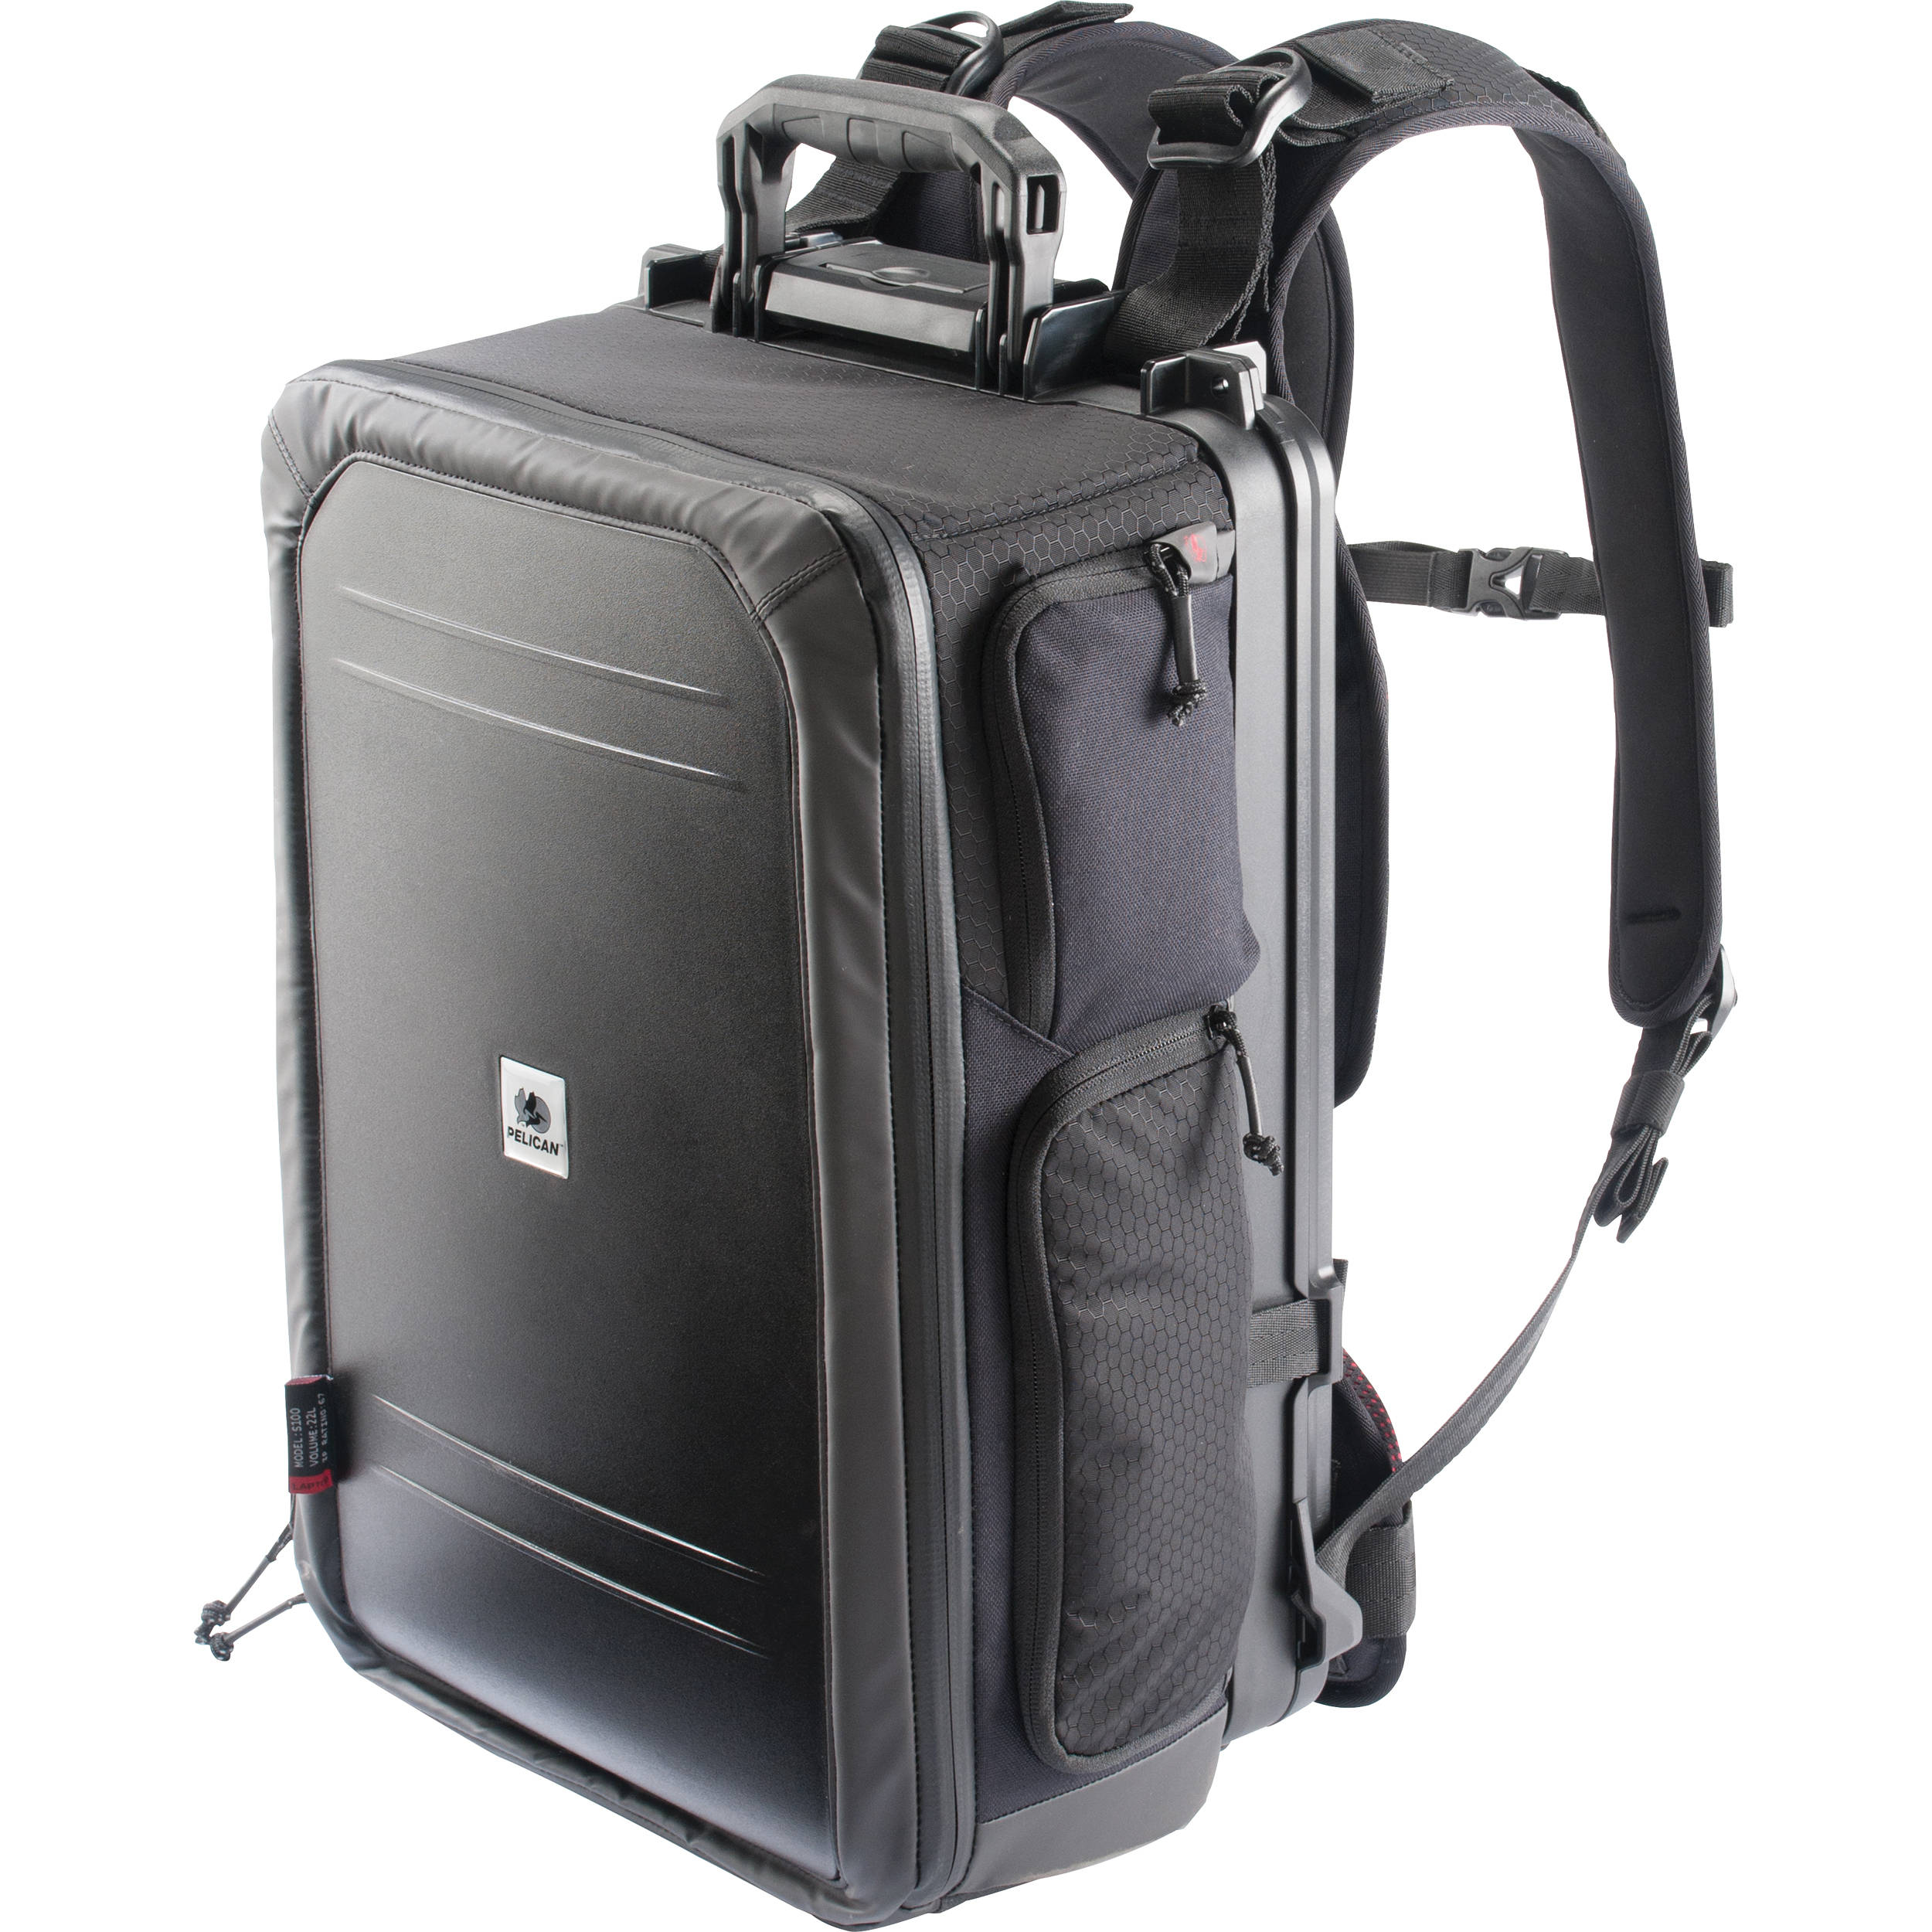 Pelican S115 Sport Elite Laptop & Camera 0S1150-0003-110 B&H